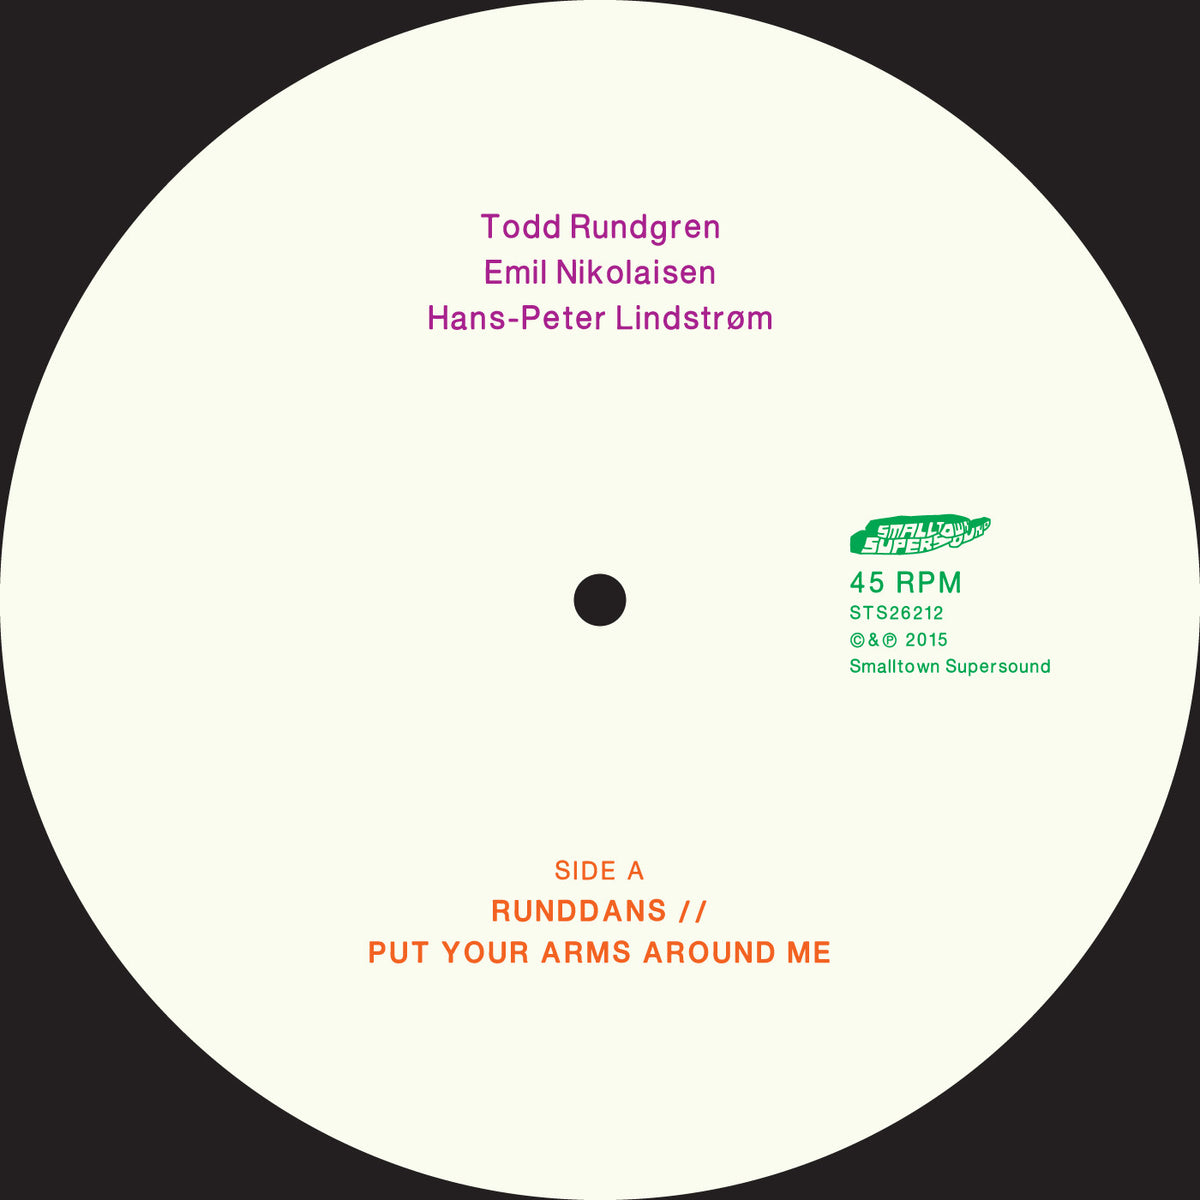 "Todd Rundgren / Emil Nikolaisen / Hans-Peter Lindstrom: Put Your Arms Around Me Vinyl 12"" (Record Store Day)"